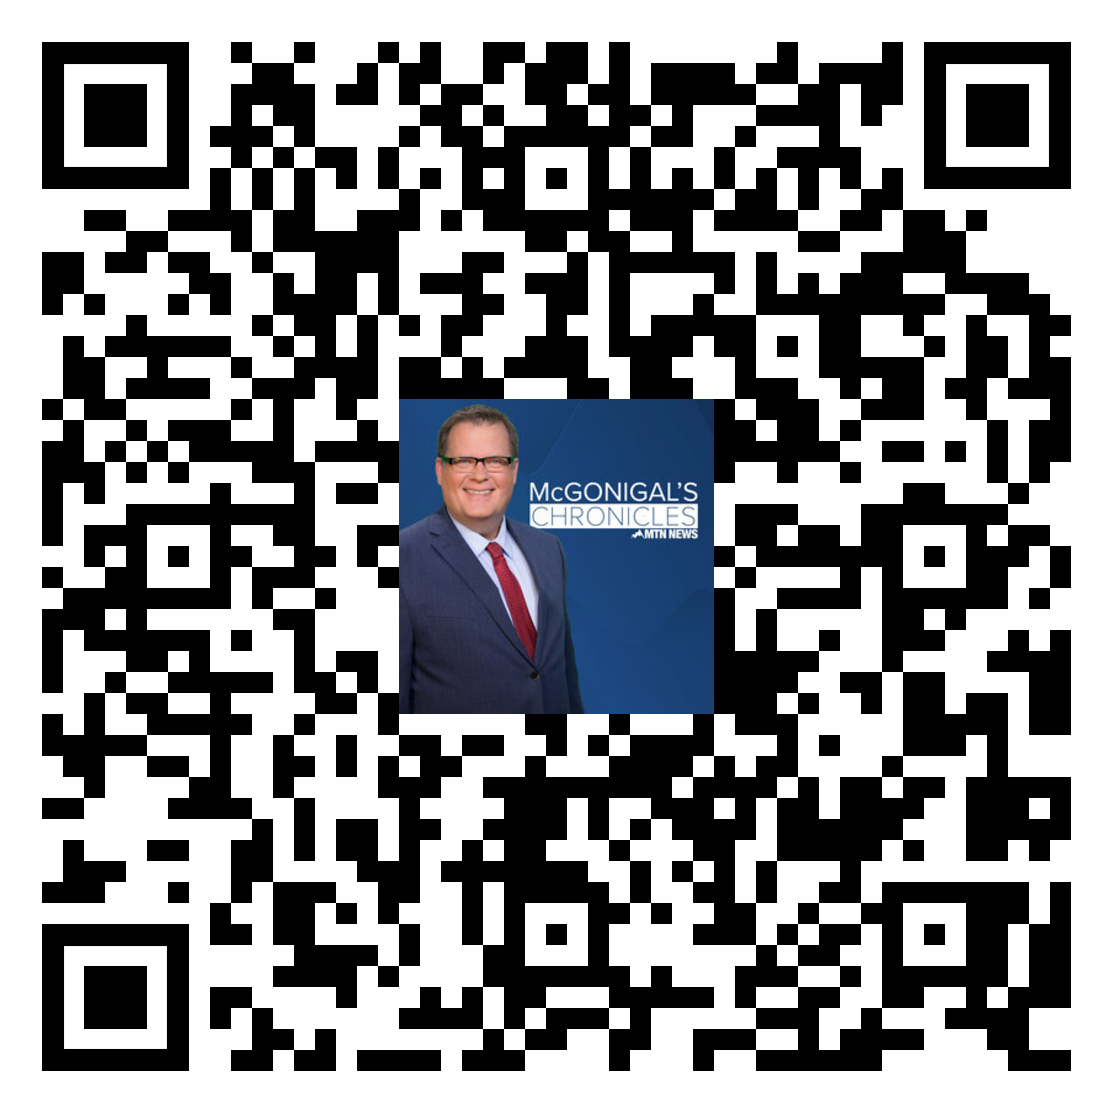 QR CODE: McGONIGAL'S CHRONICLES